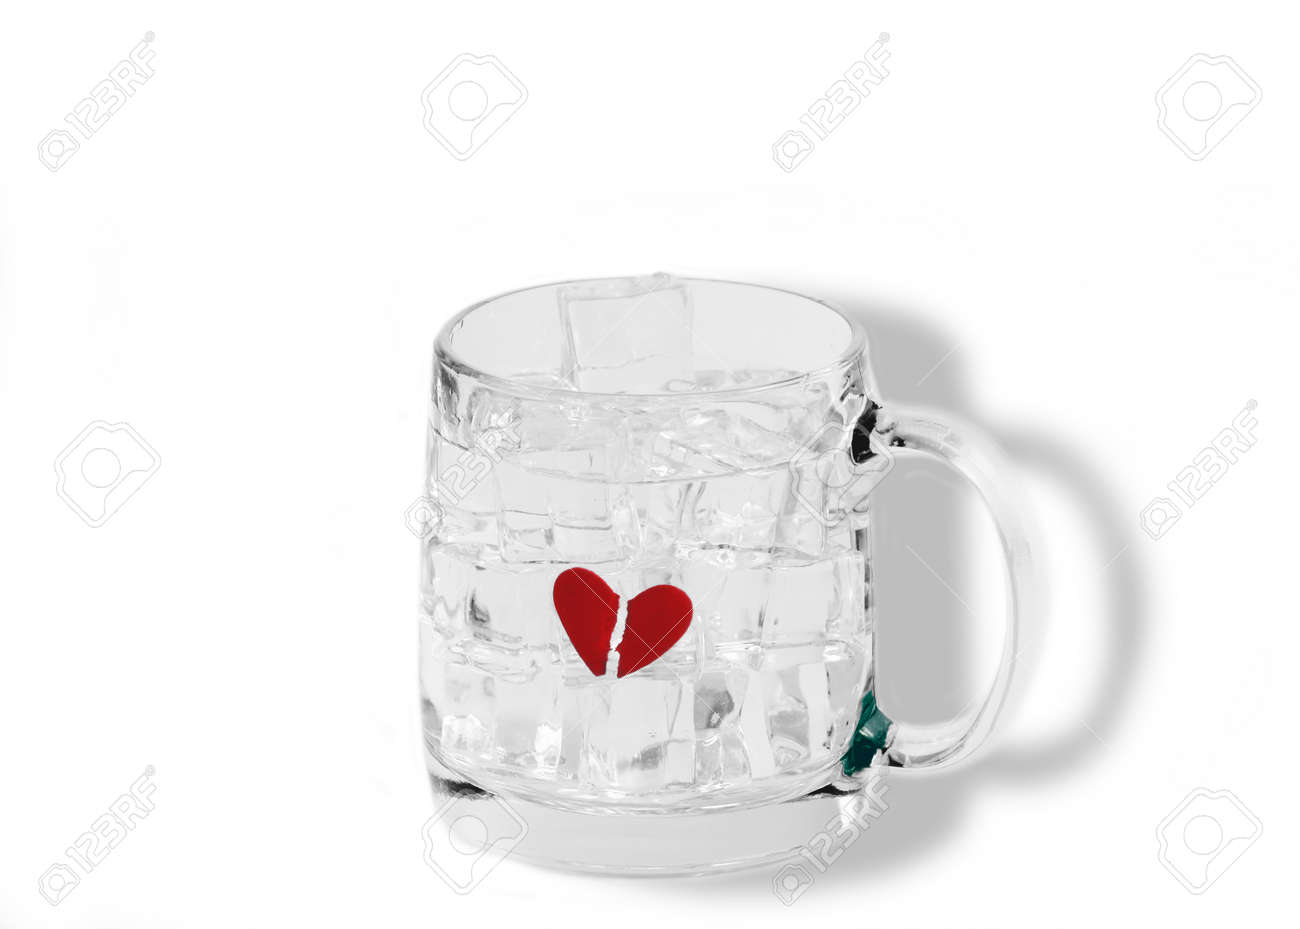 A Broken Red Heart Frozen Inside A Transparent Cup Filled With Ice Cubes  And Water,